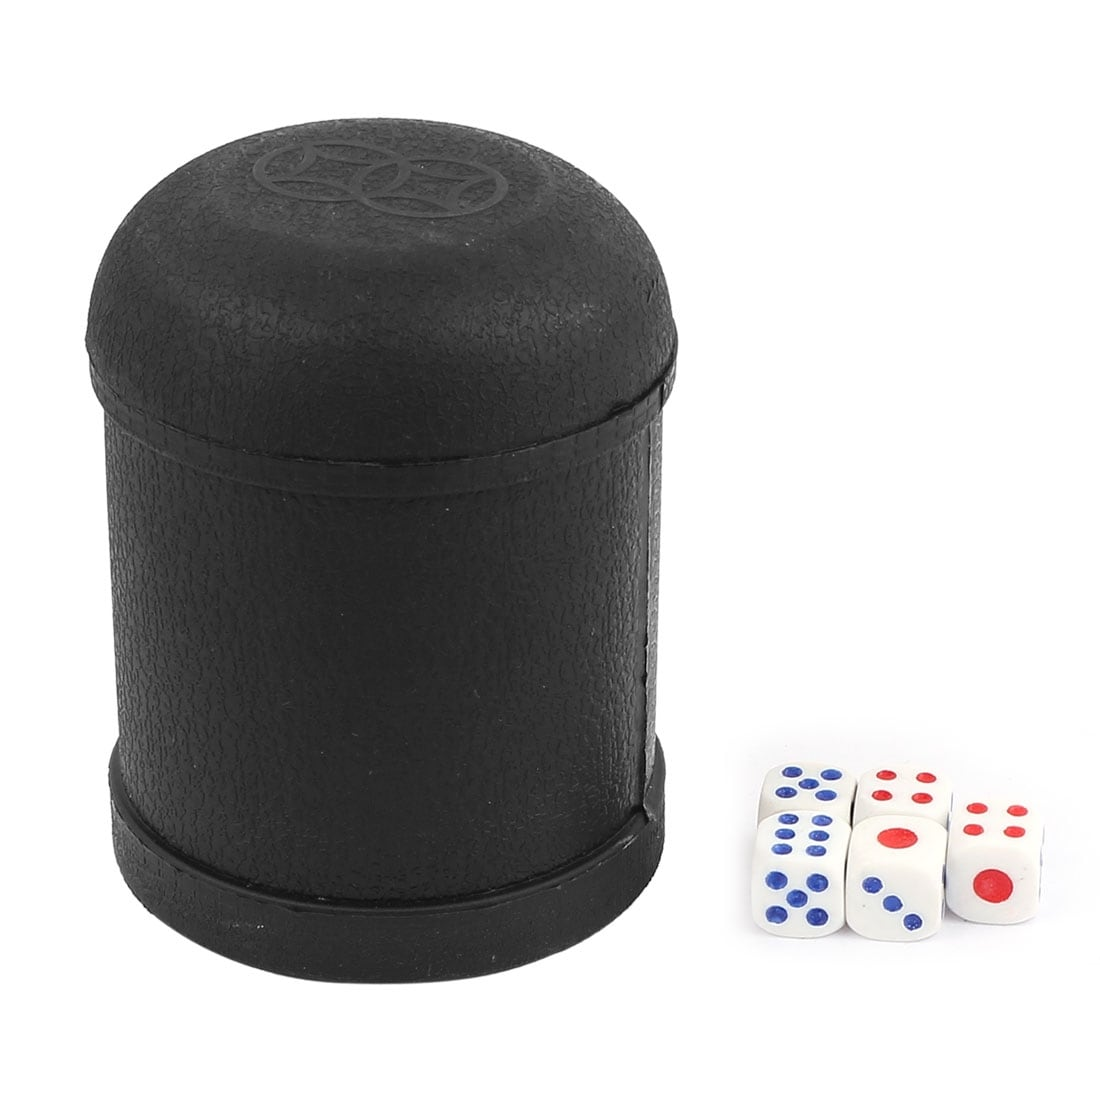 Dice Cup with 5 White Dices Shaking Cup Drinking Games Dices Set KTV Pub Casino Party Game Toy